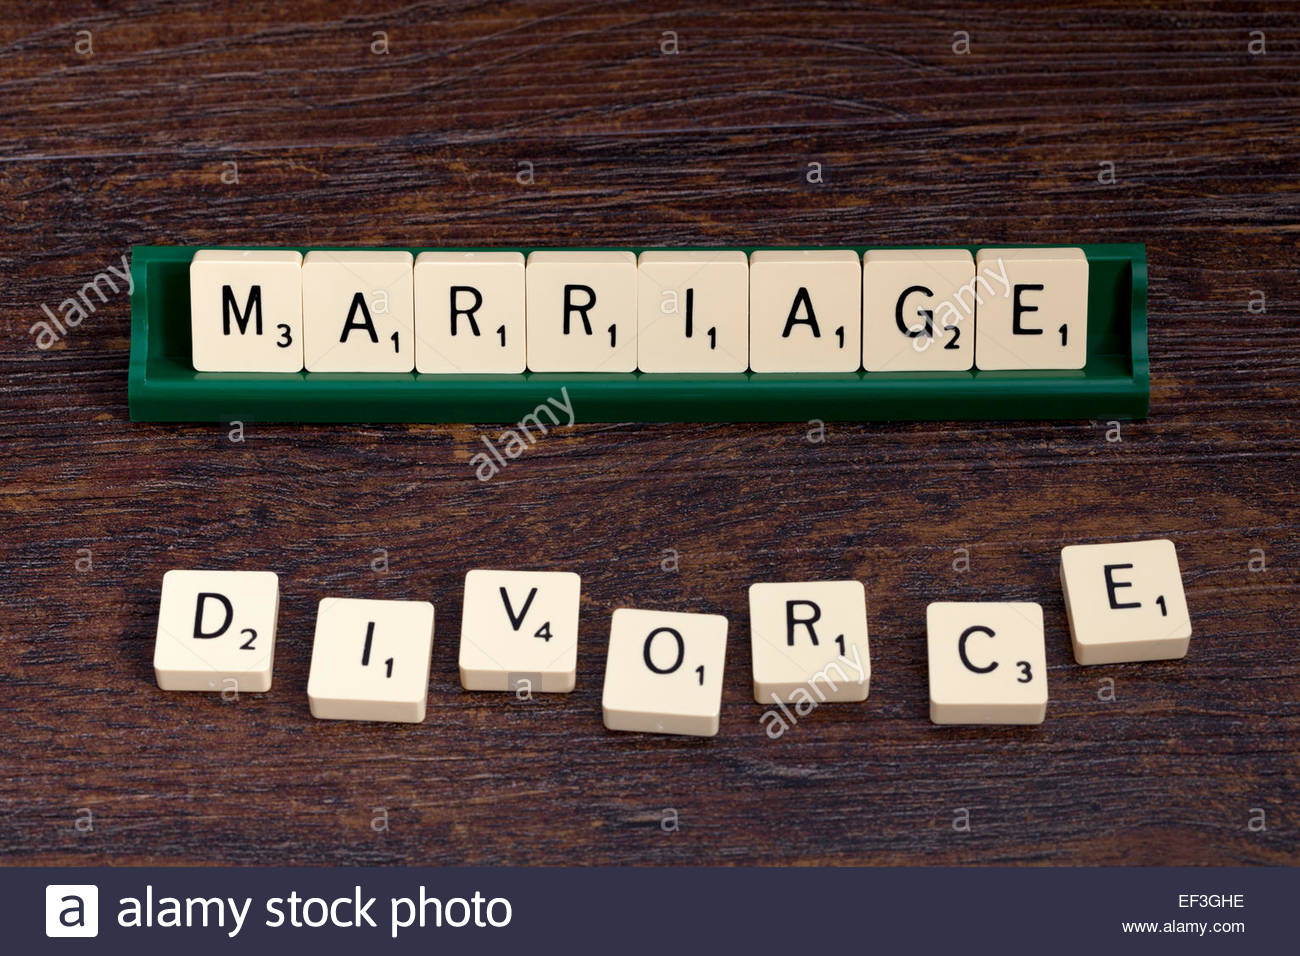 Marriage and Divorce spelled out with scrabble letters. - Stock Image